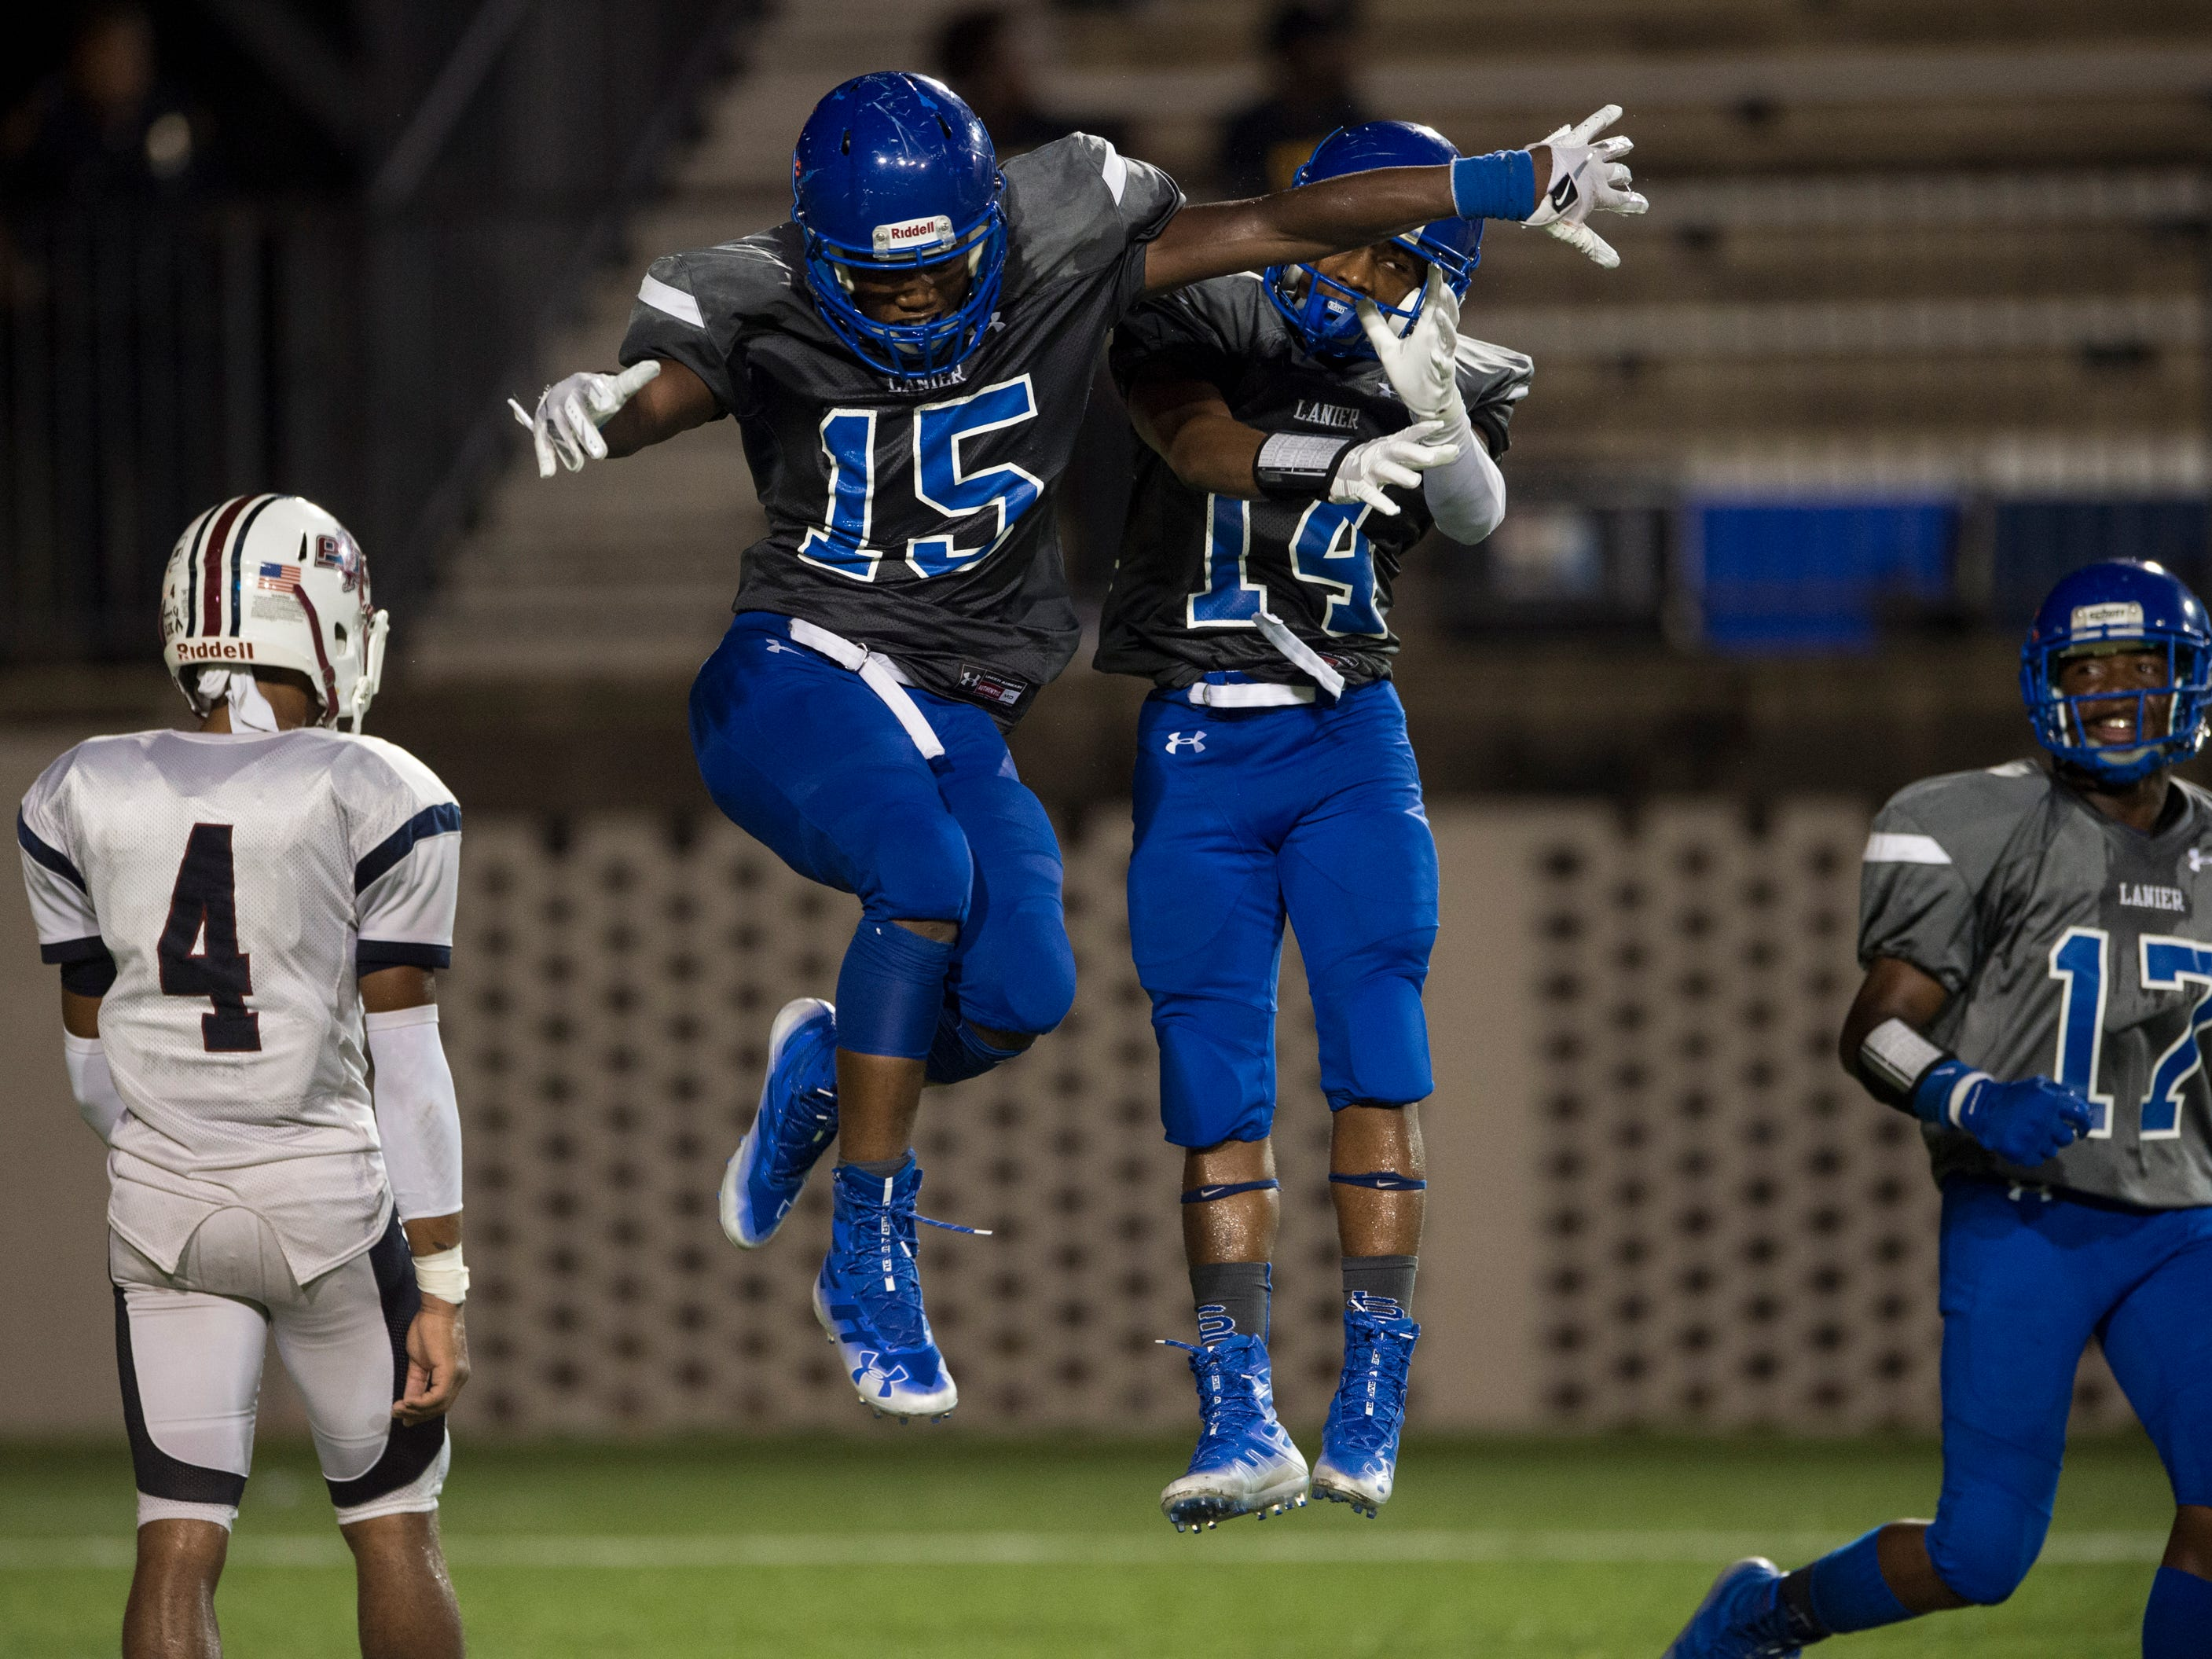 Lanier's Jacory Merritt (15) celebrates with Anthony Shackelford (14) after Merritt's touchdown run against Park Crossing at Cramton Bowl in Montgomery, Ala., on Friday, Sept. 21, 2018. Lanier defeated Park Crossing 35-28.